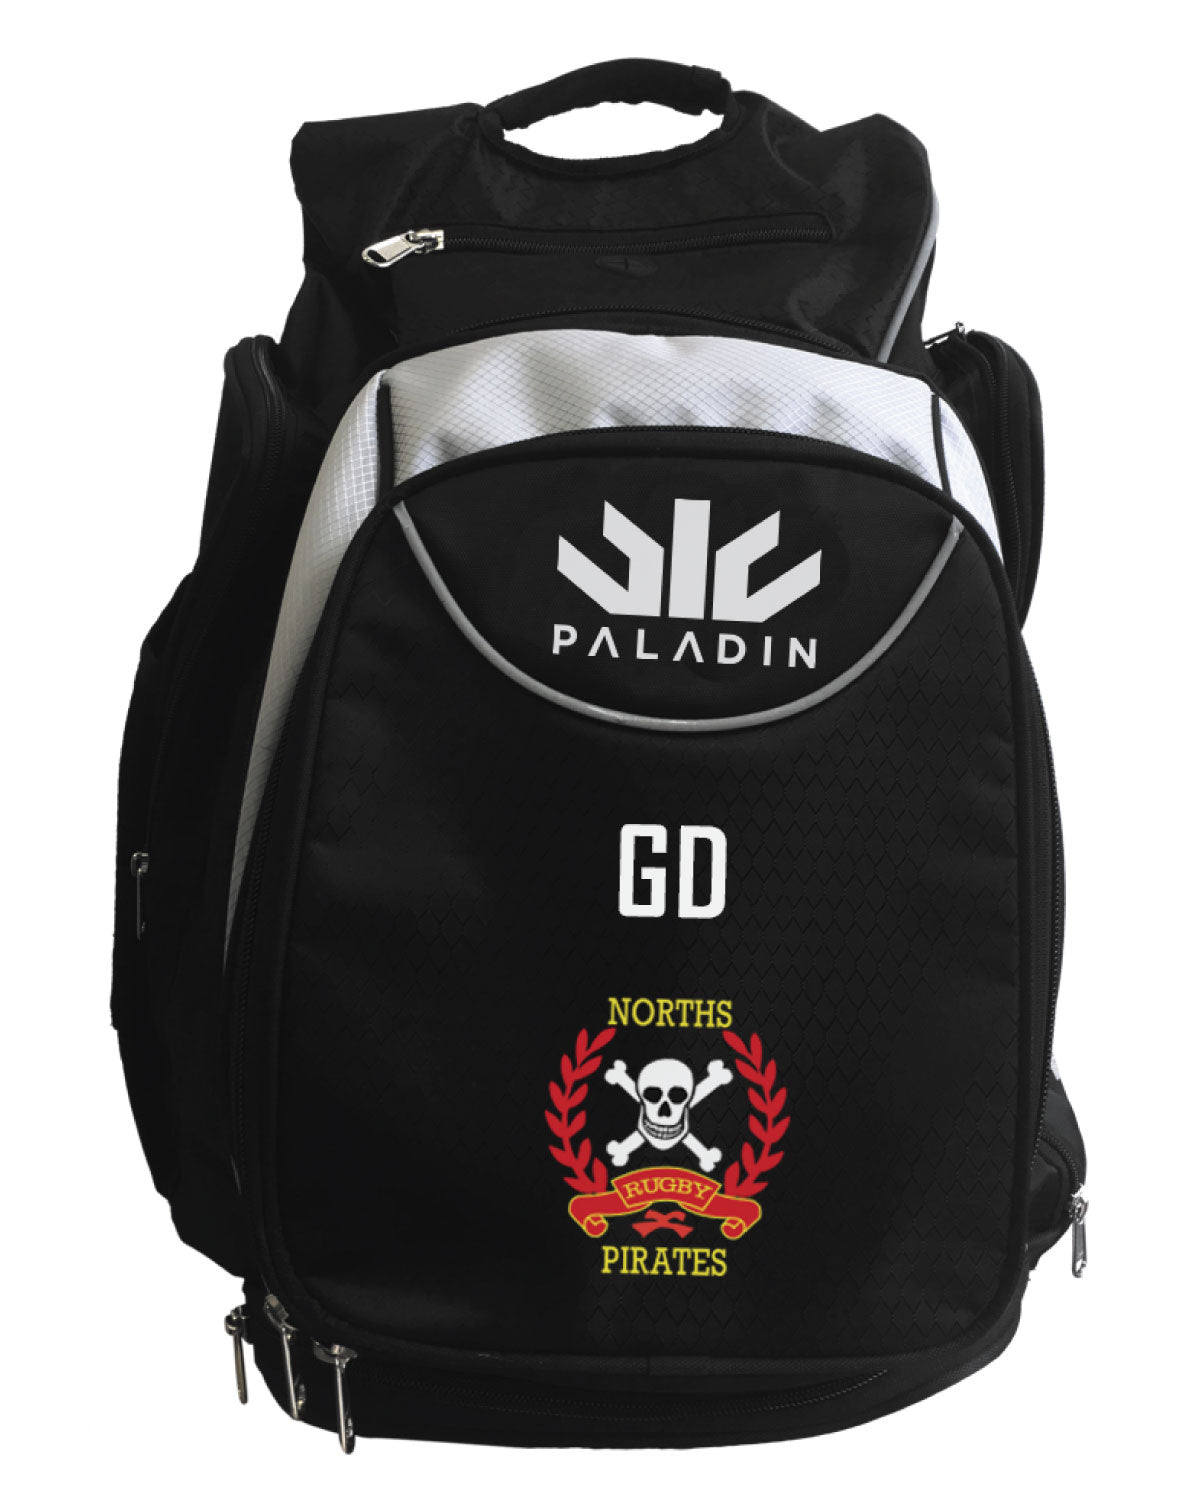 North Pirates Backpack